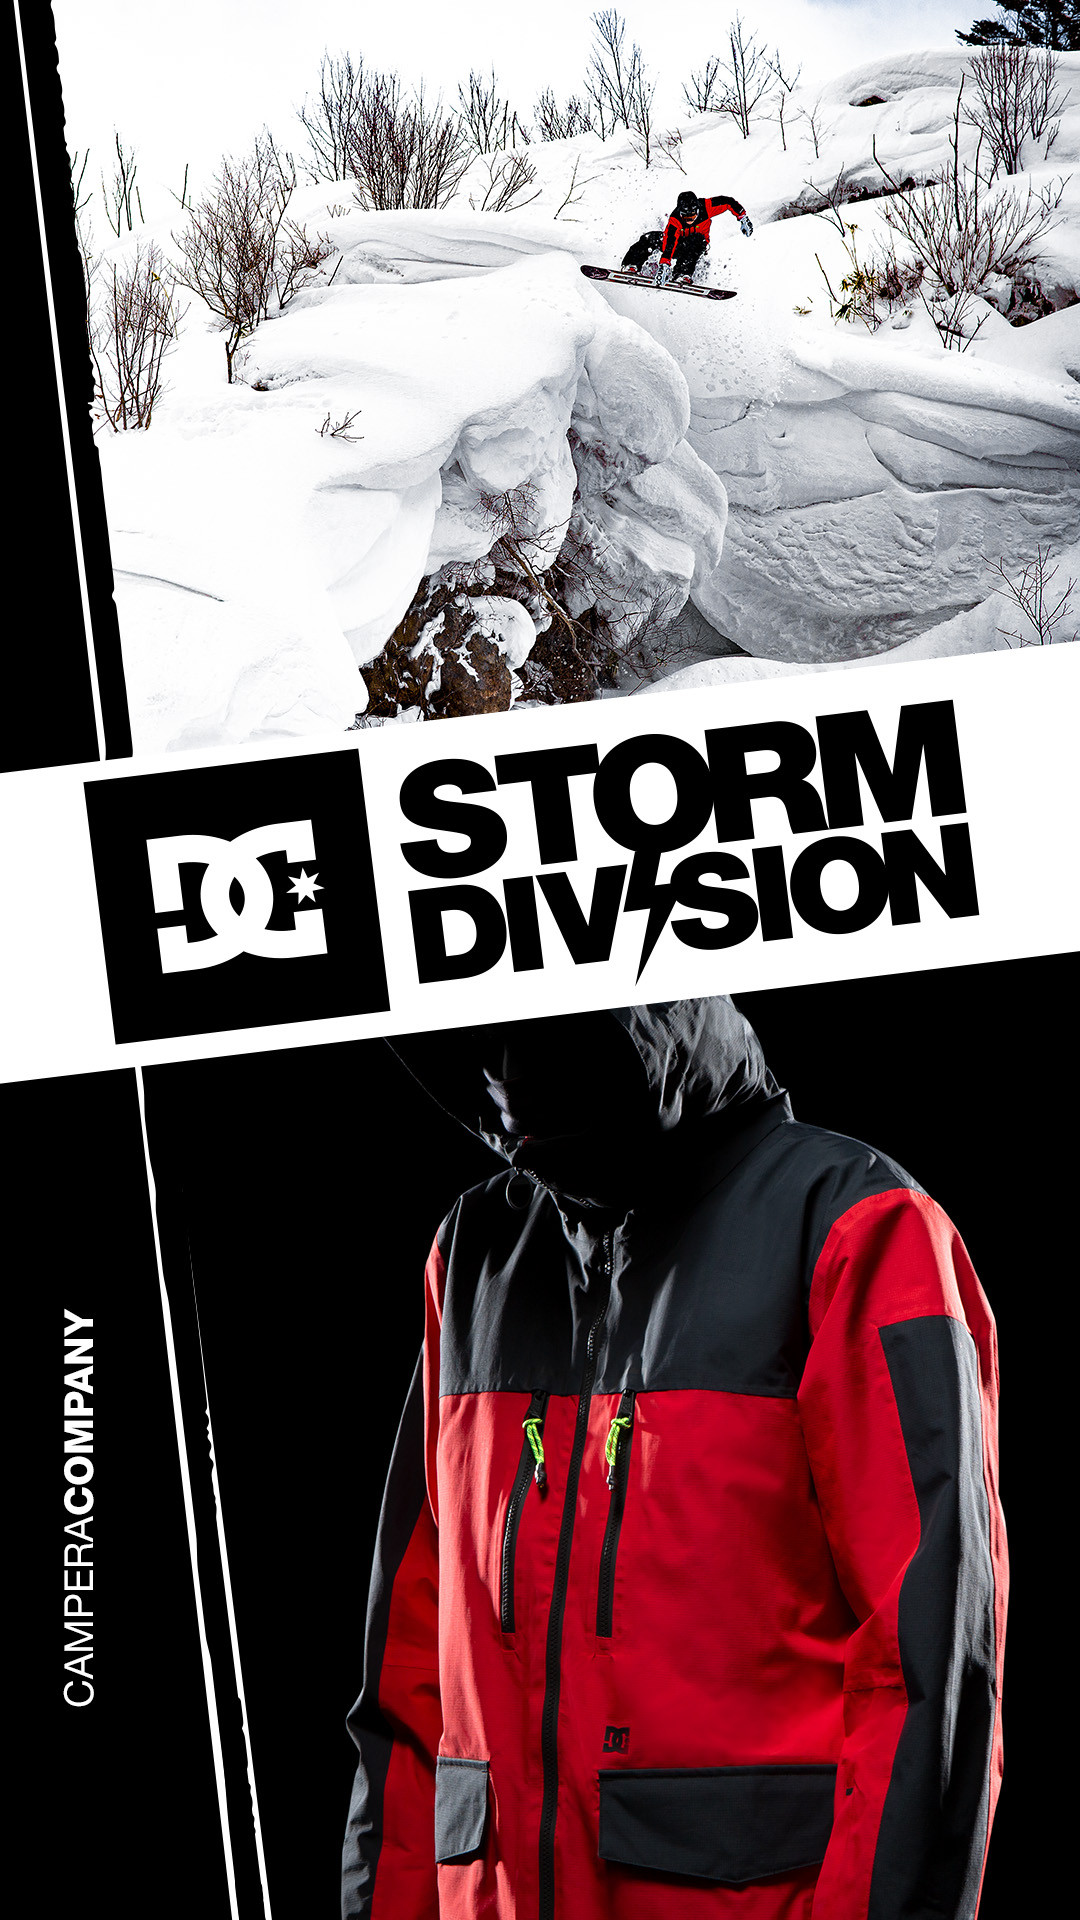 Storm Division Collection snow